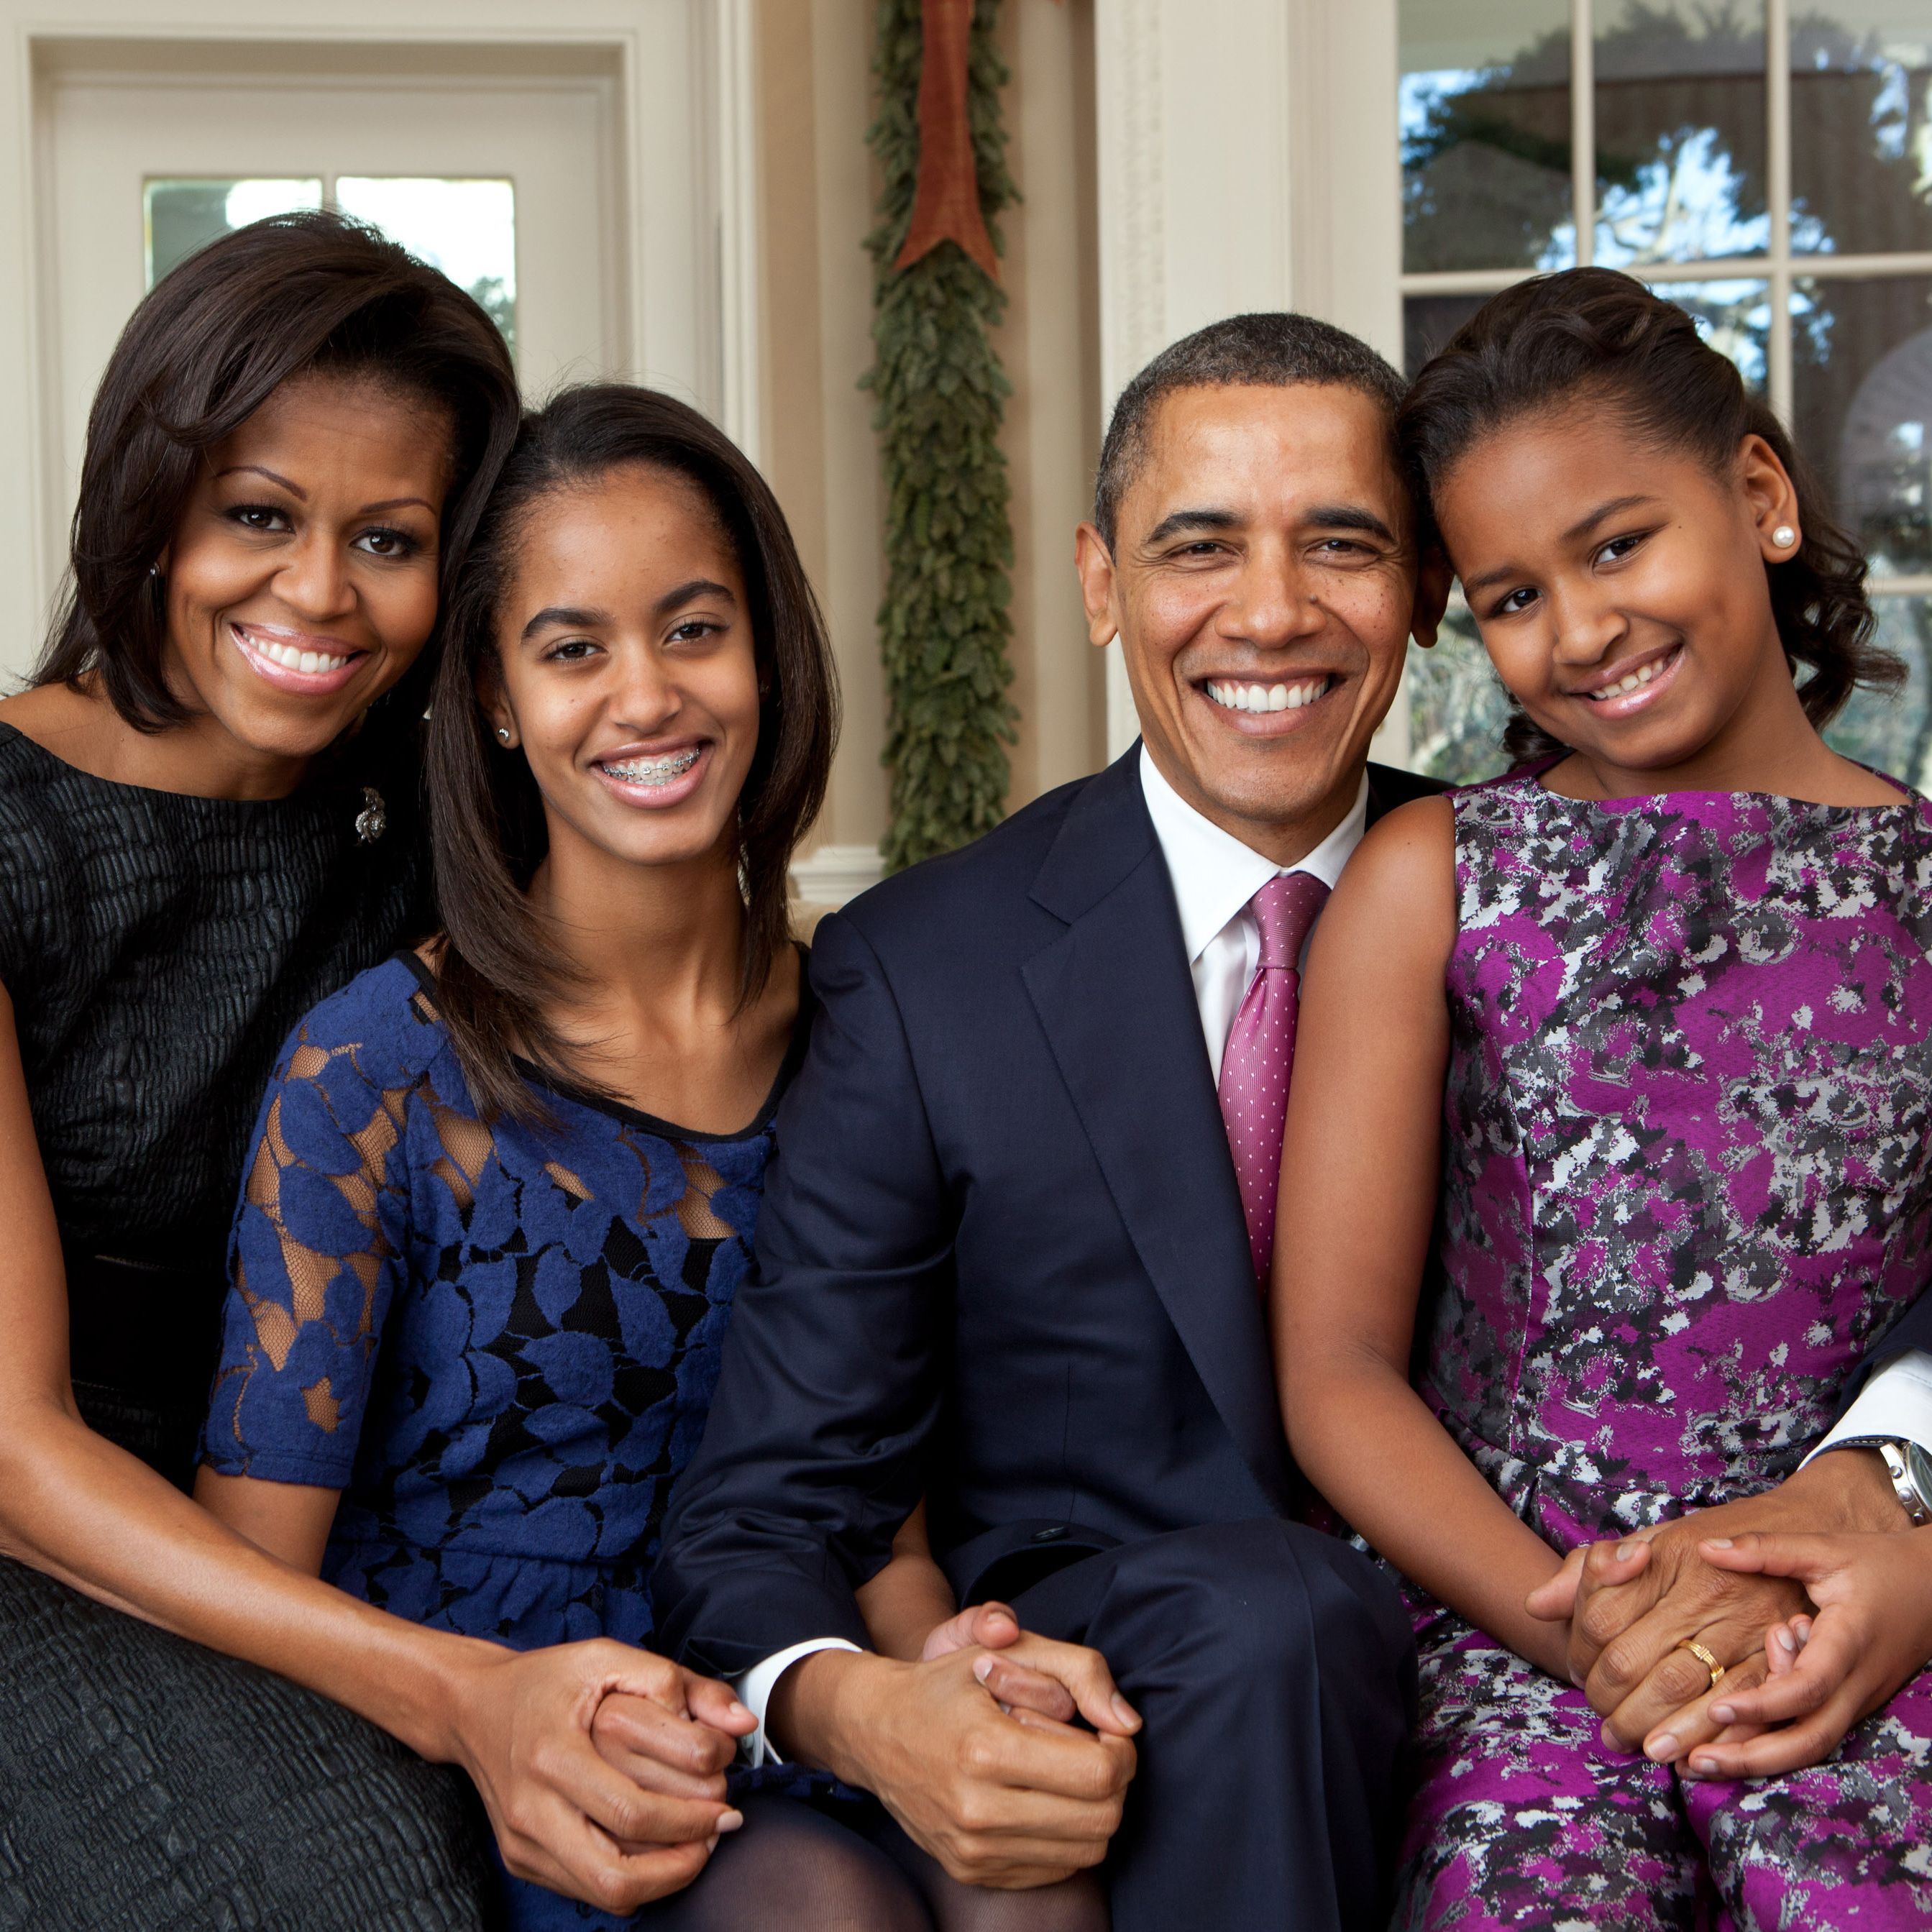 helicopter parenting definition with Barack Obama Talks About Daughters View 23116989 on The Effects Of Parenting Styles On Children furthermore Magazine 18032390 in addition Characteristics Of Parenting Styles And Their Effects On Adolescent Development further Helicopter Parent in addition Funny Teachers Holidays.